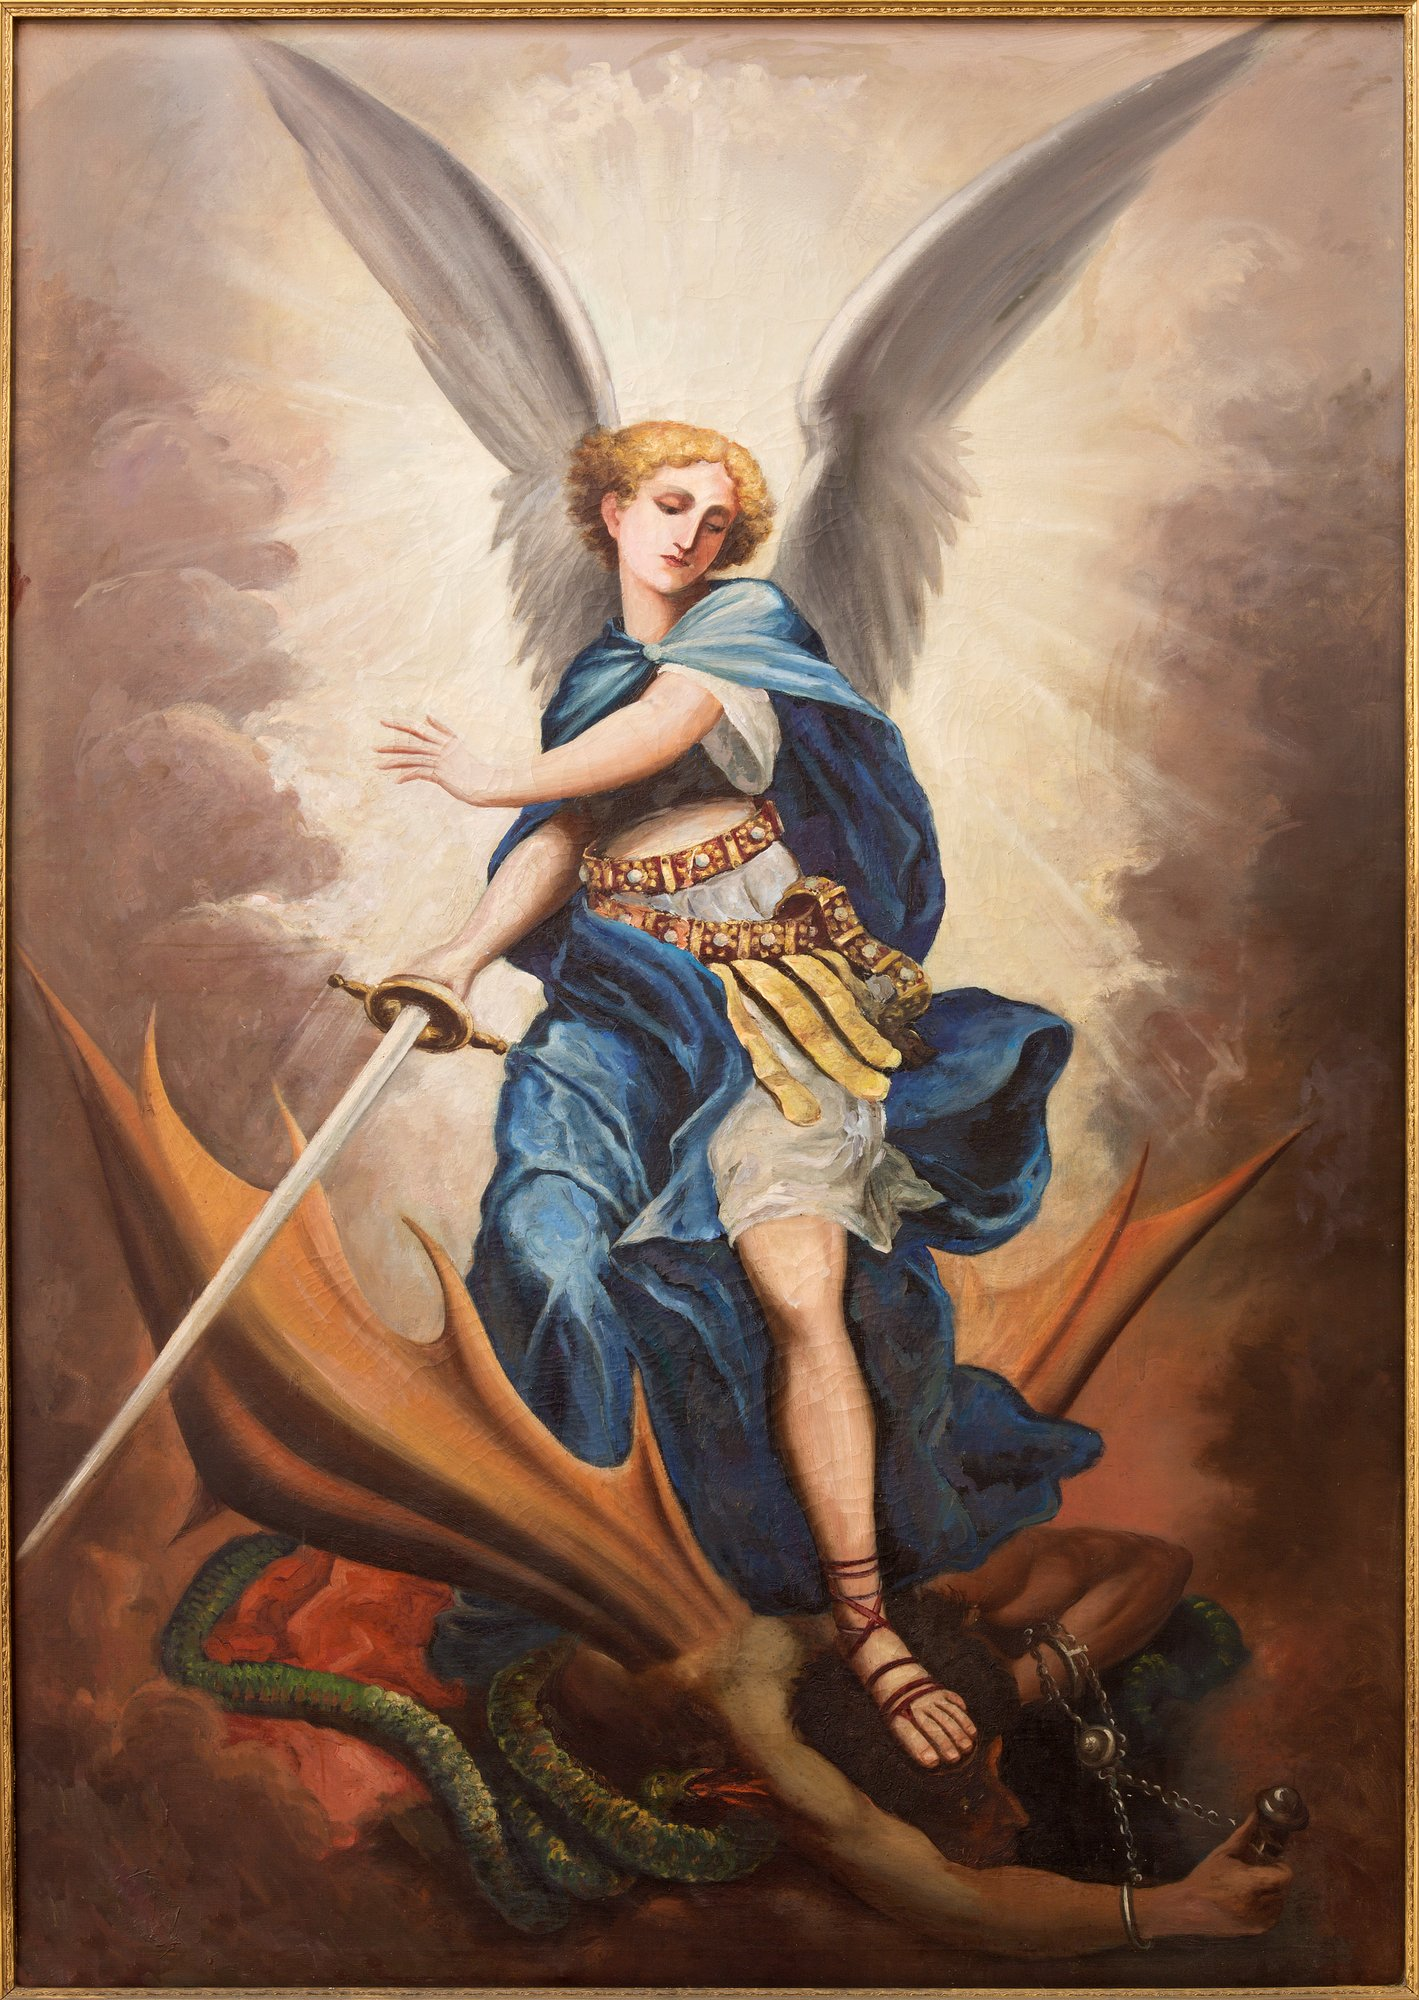 archangel michael fights with the great dragon